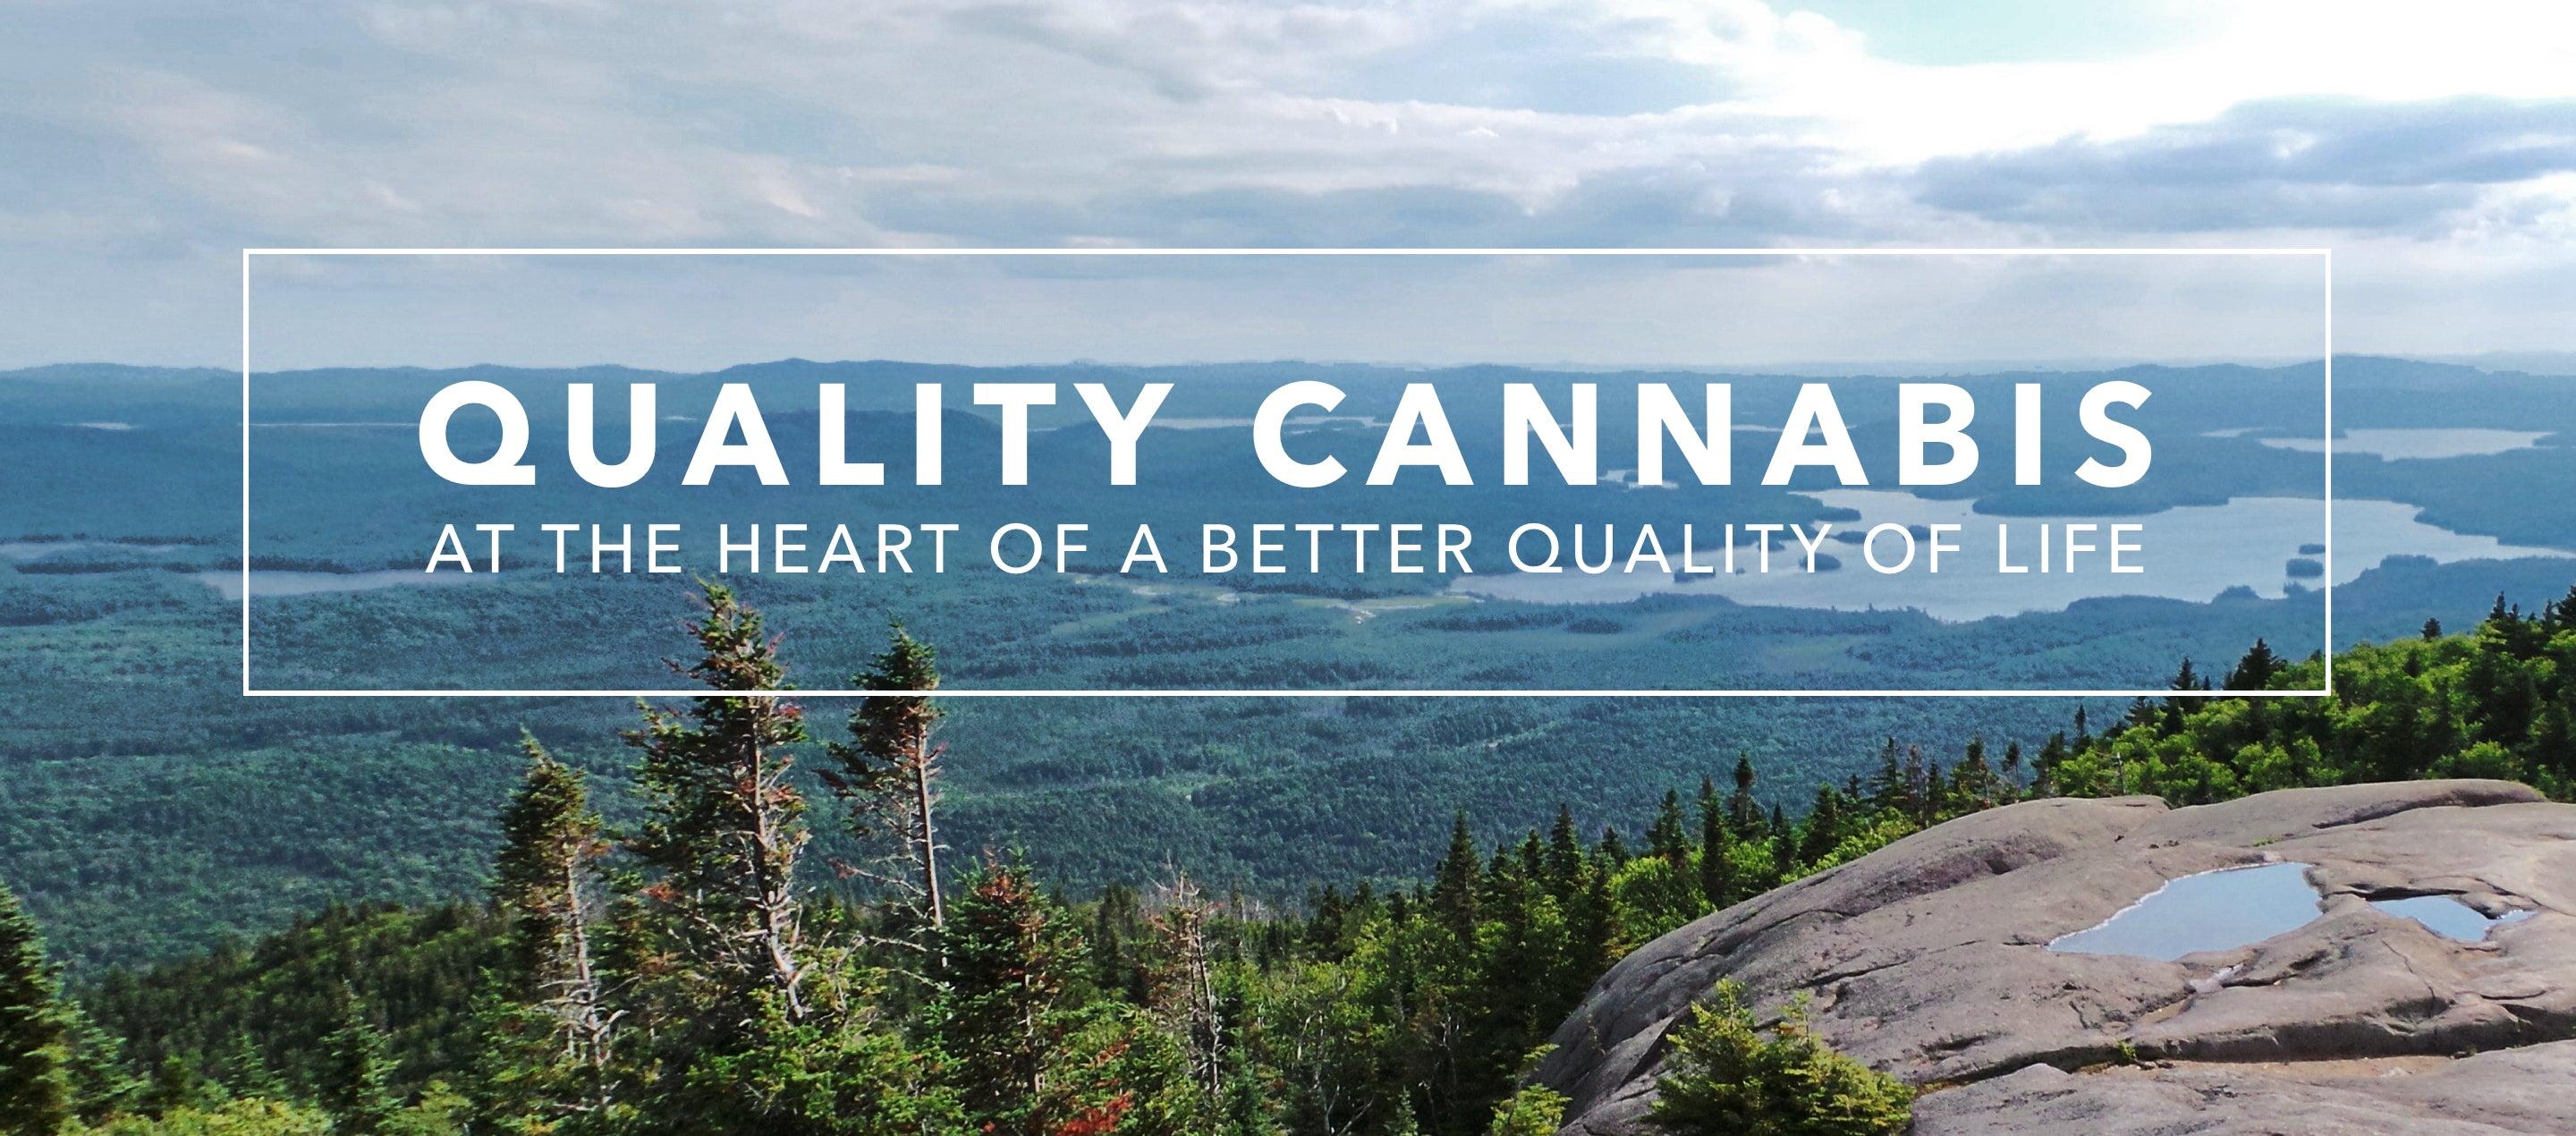 Quality Cannabis at the heart of a better quality of life